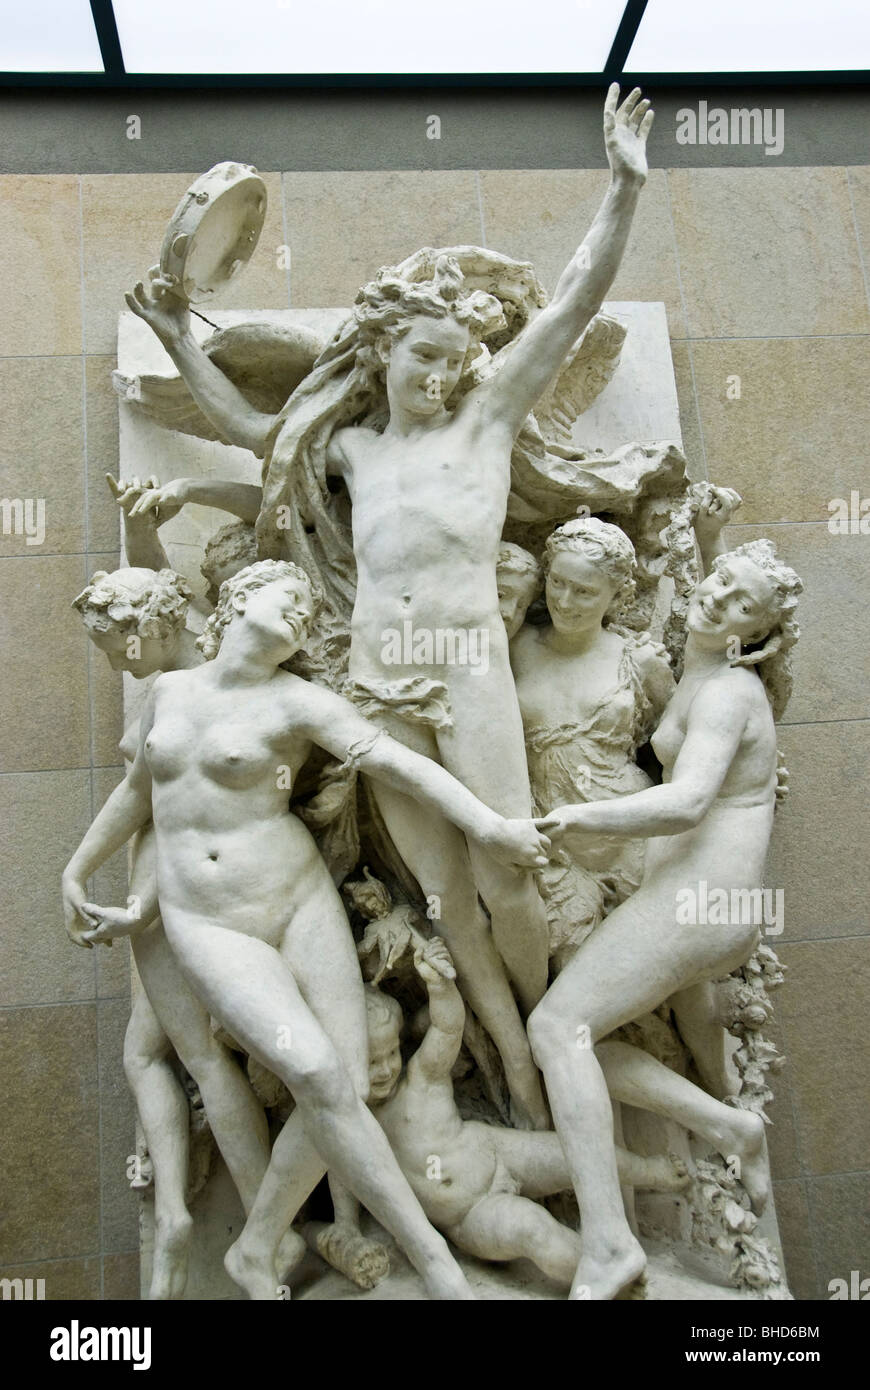 """Paris, France- Orsay Museum, Central Sculpture Aisle, with Collection of French 19th century Sculpture, """"Dance"""" Stock Photo"""